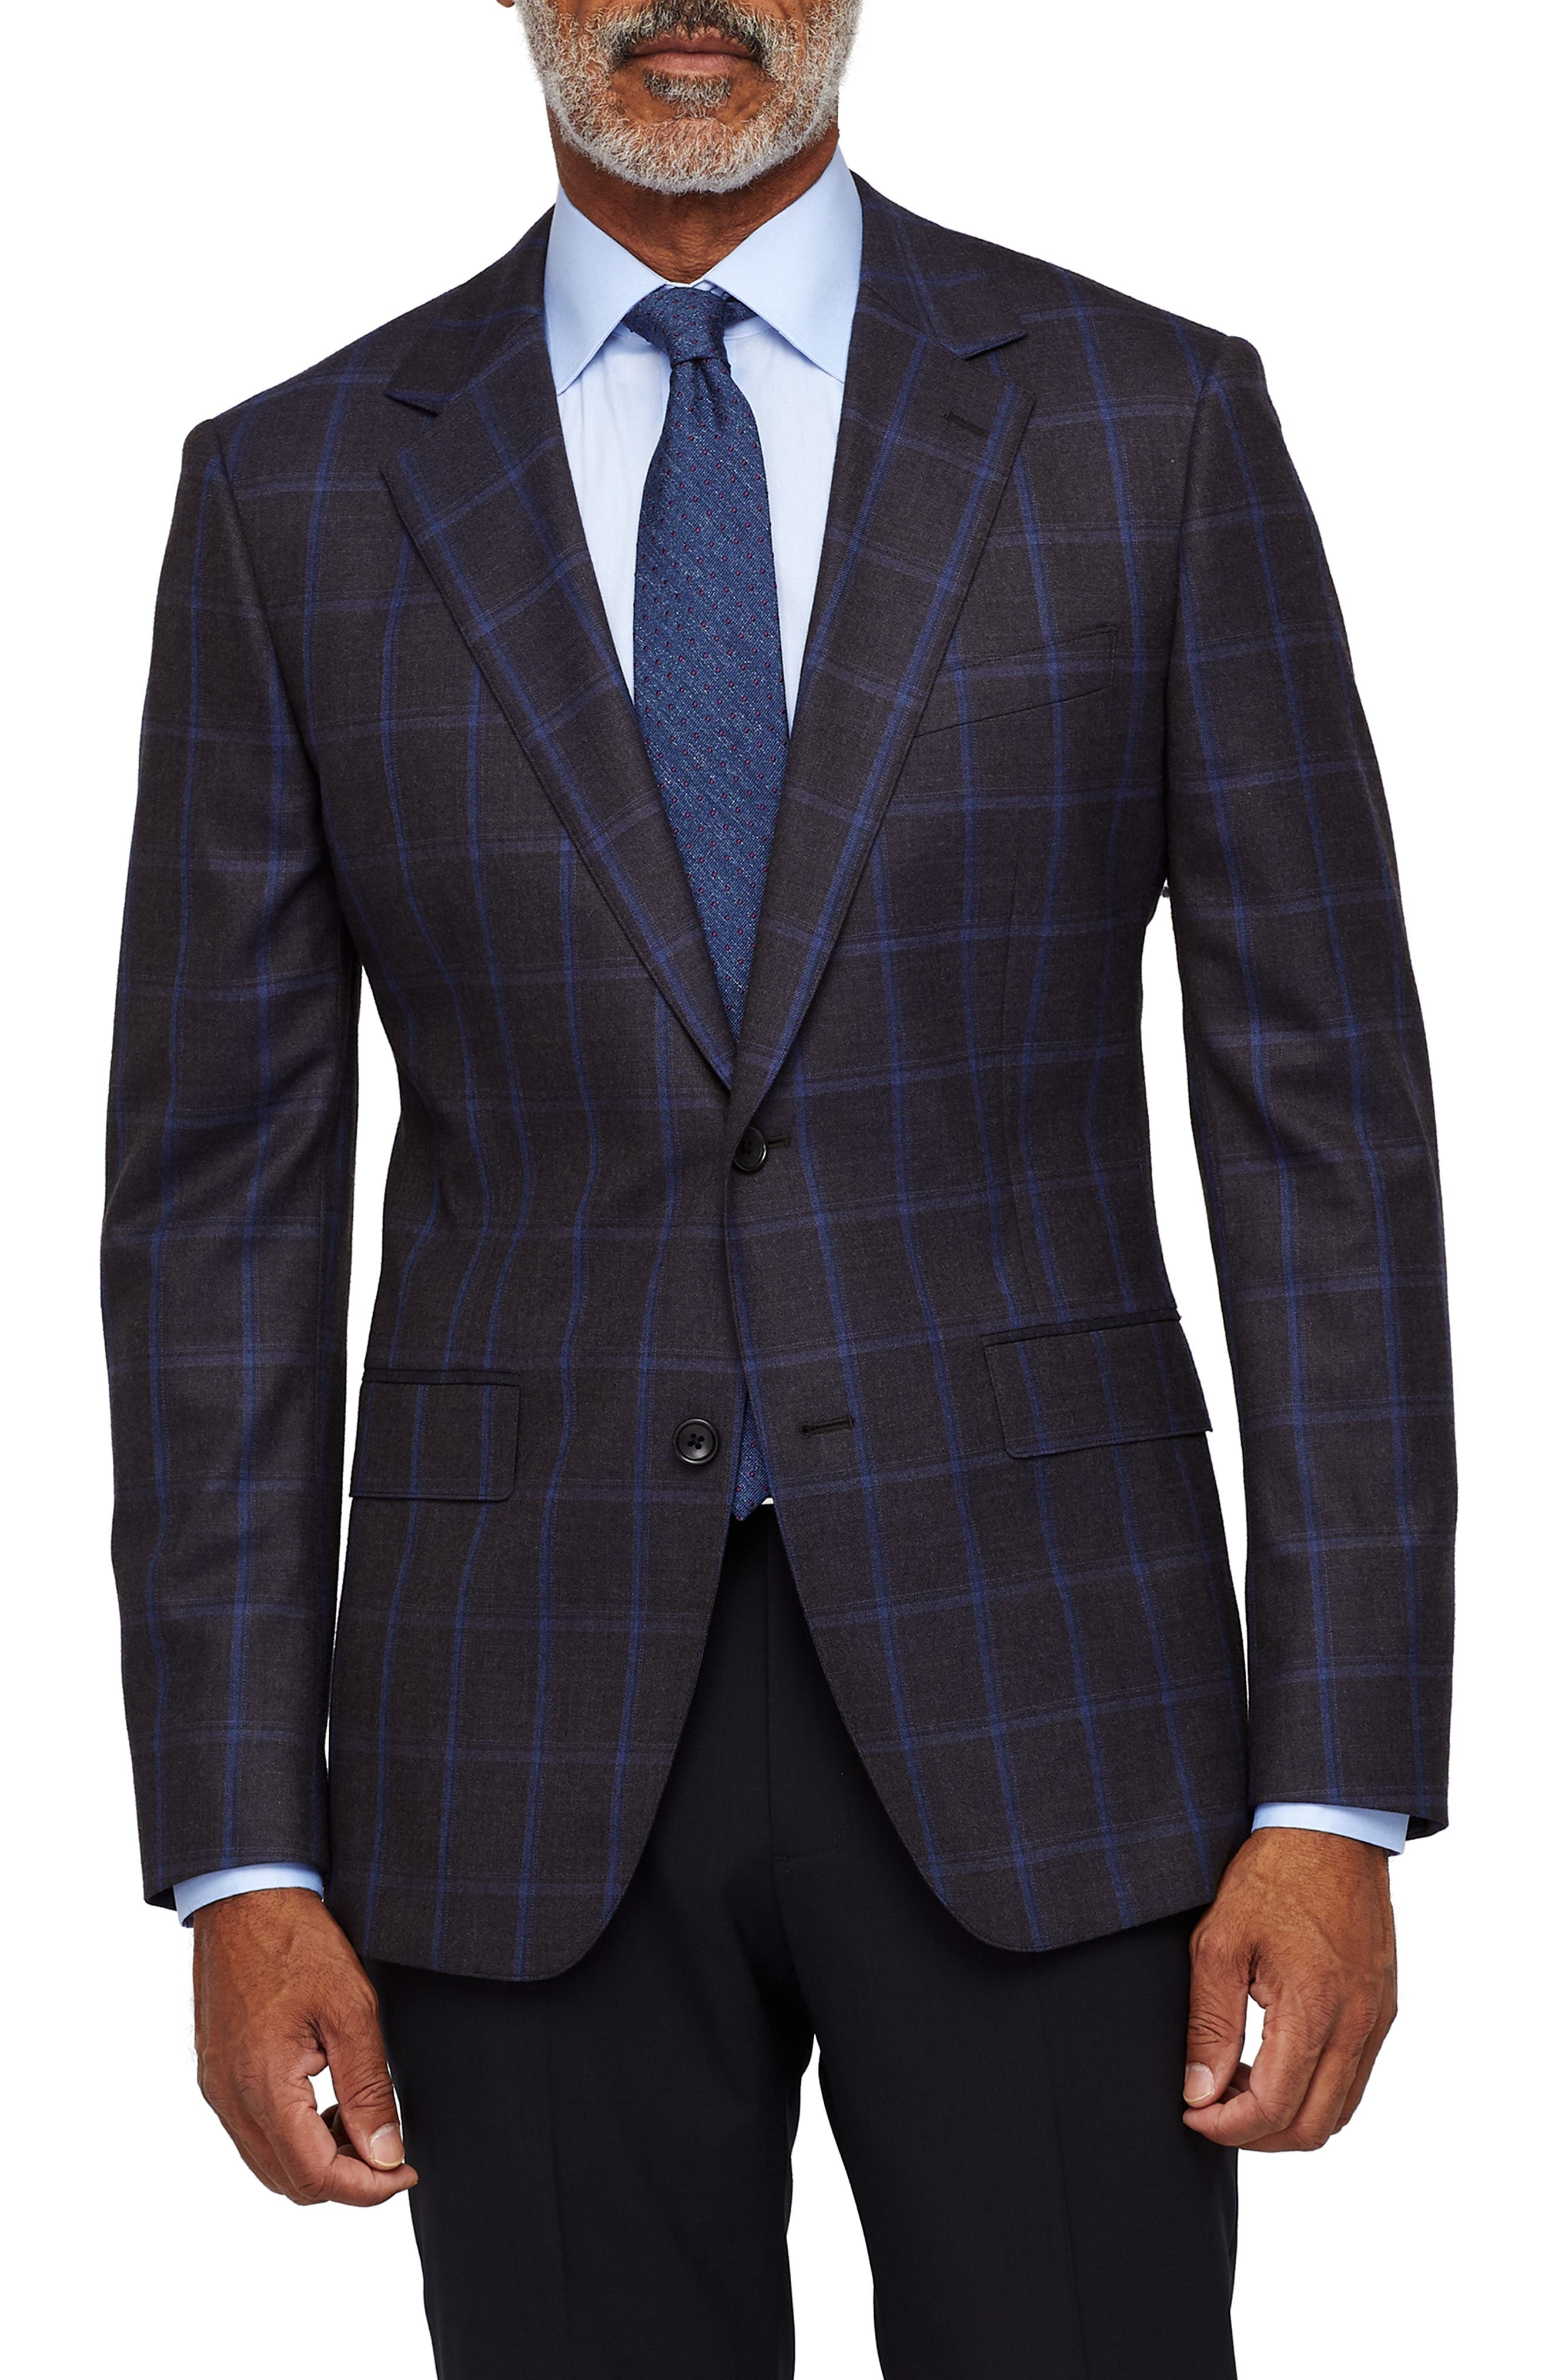 Jetsetter Stretch Wool Blazer,                         Main,                         color, BLUE AND SLATE WINDOWPANE